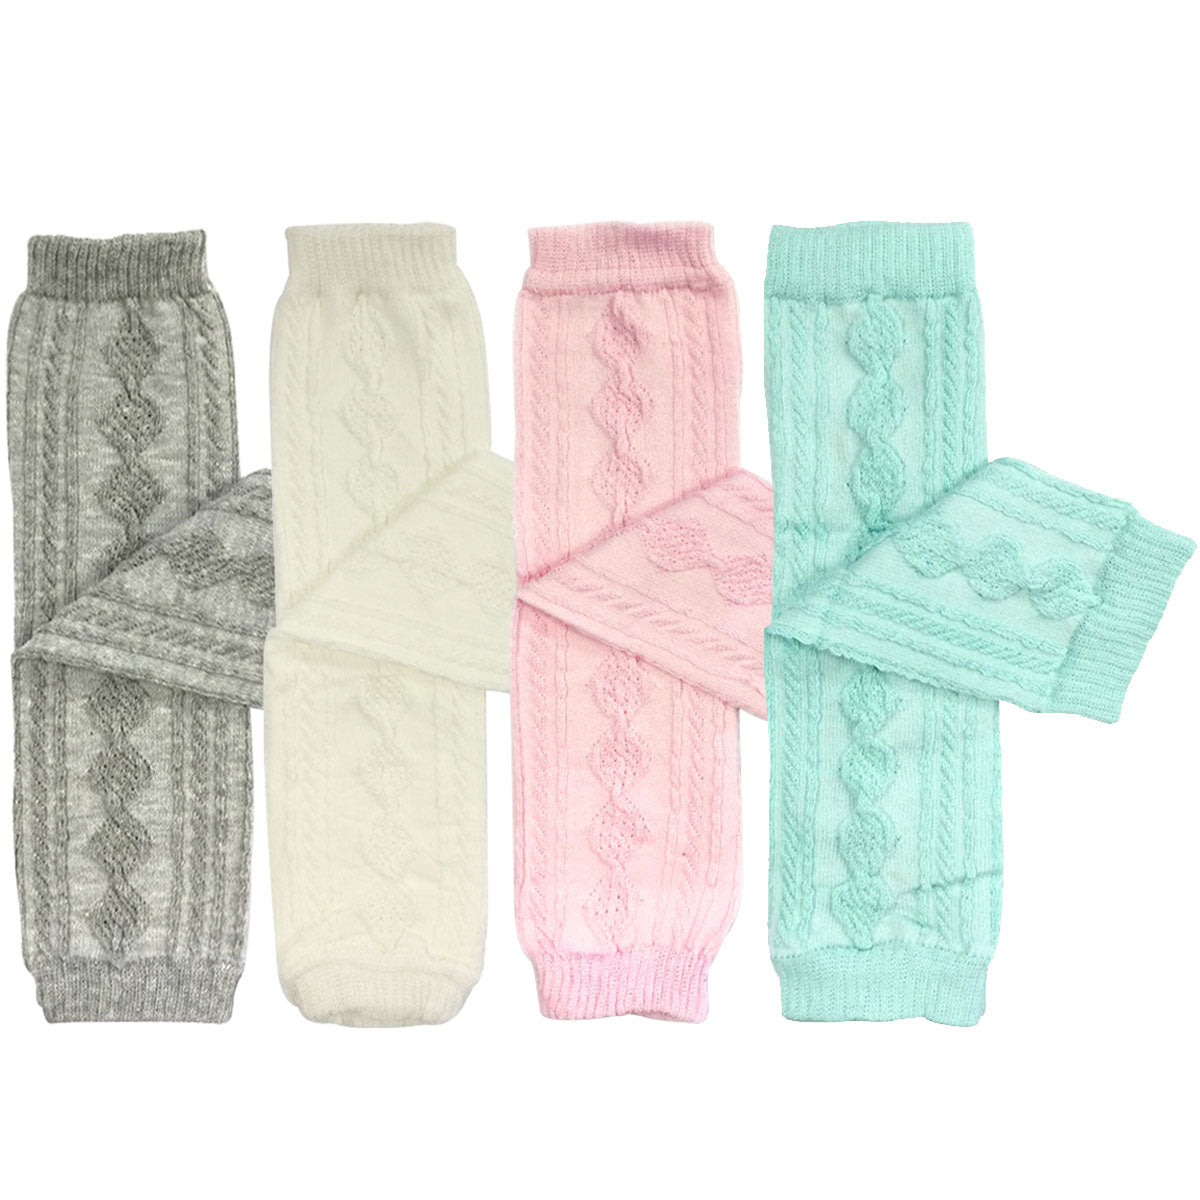 Wrapables Cable-Knit Baby Leg Warmers Set of 4